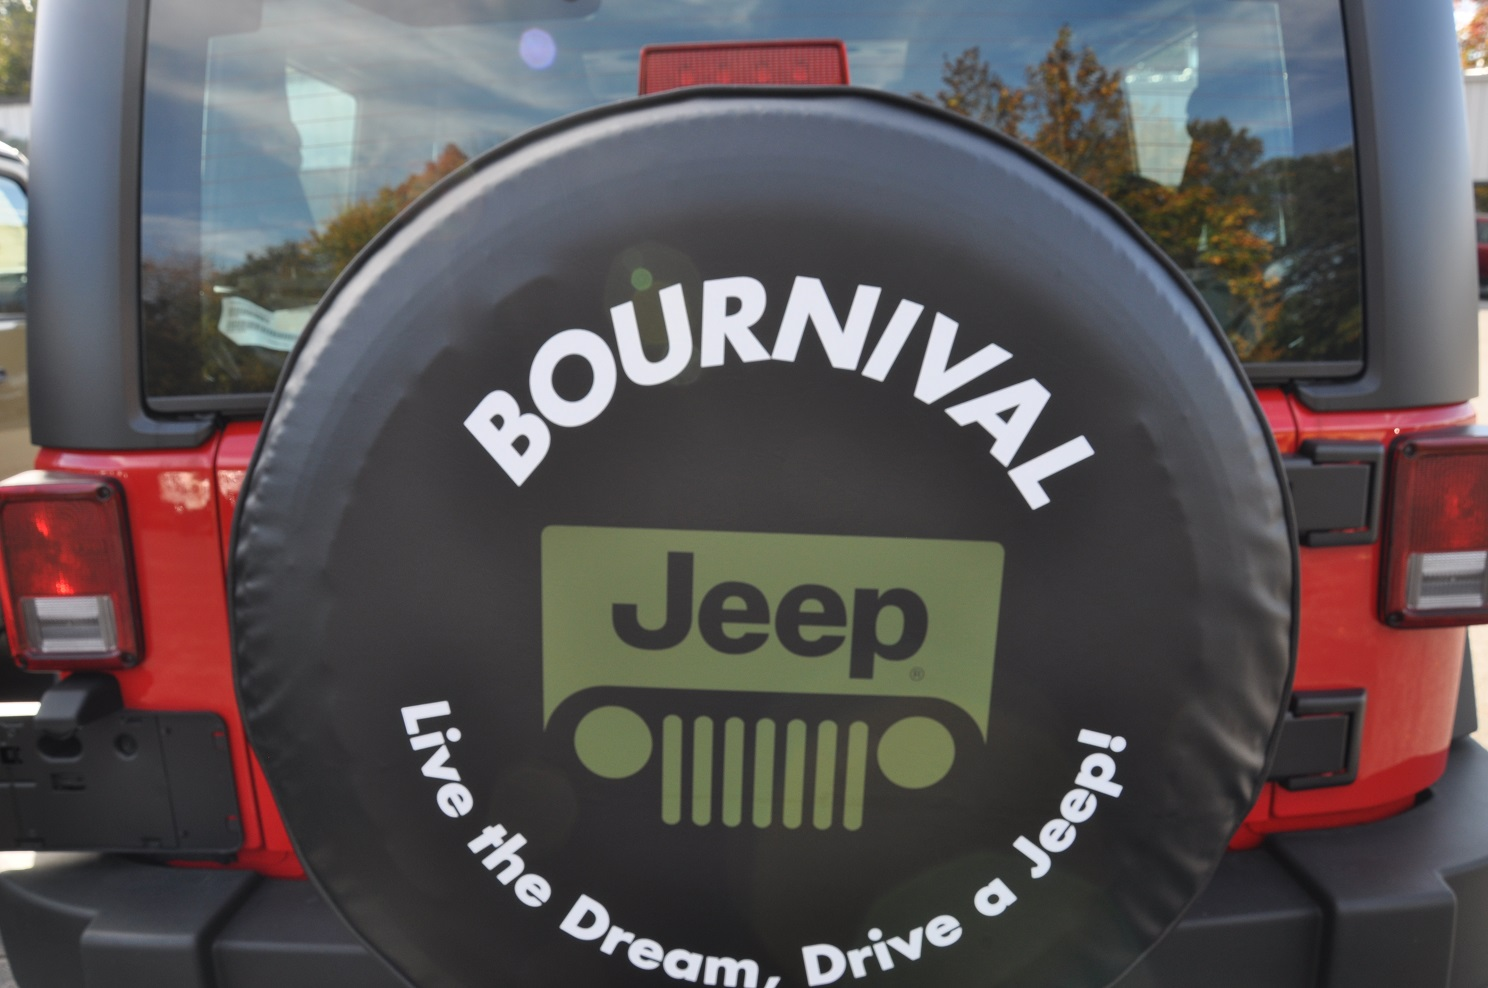 Style Inspiration and Design Bournival Jeep